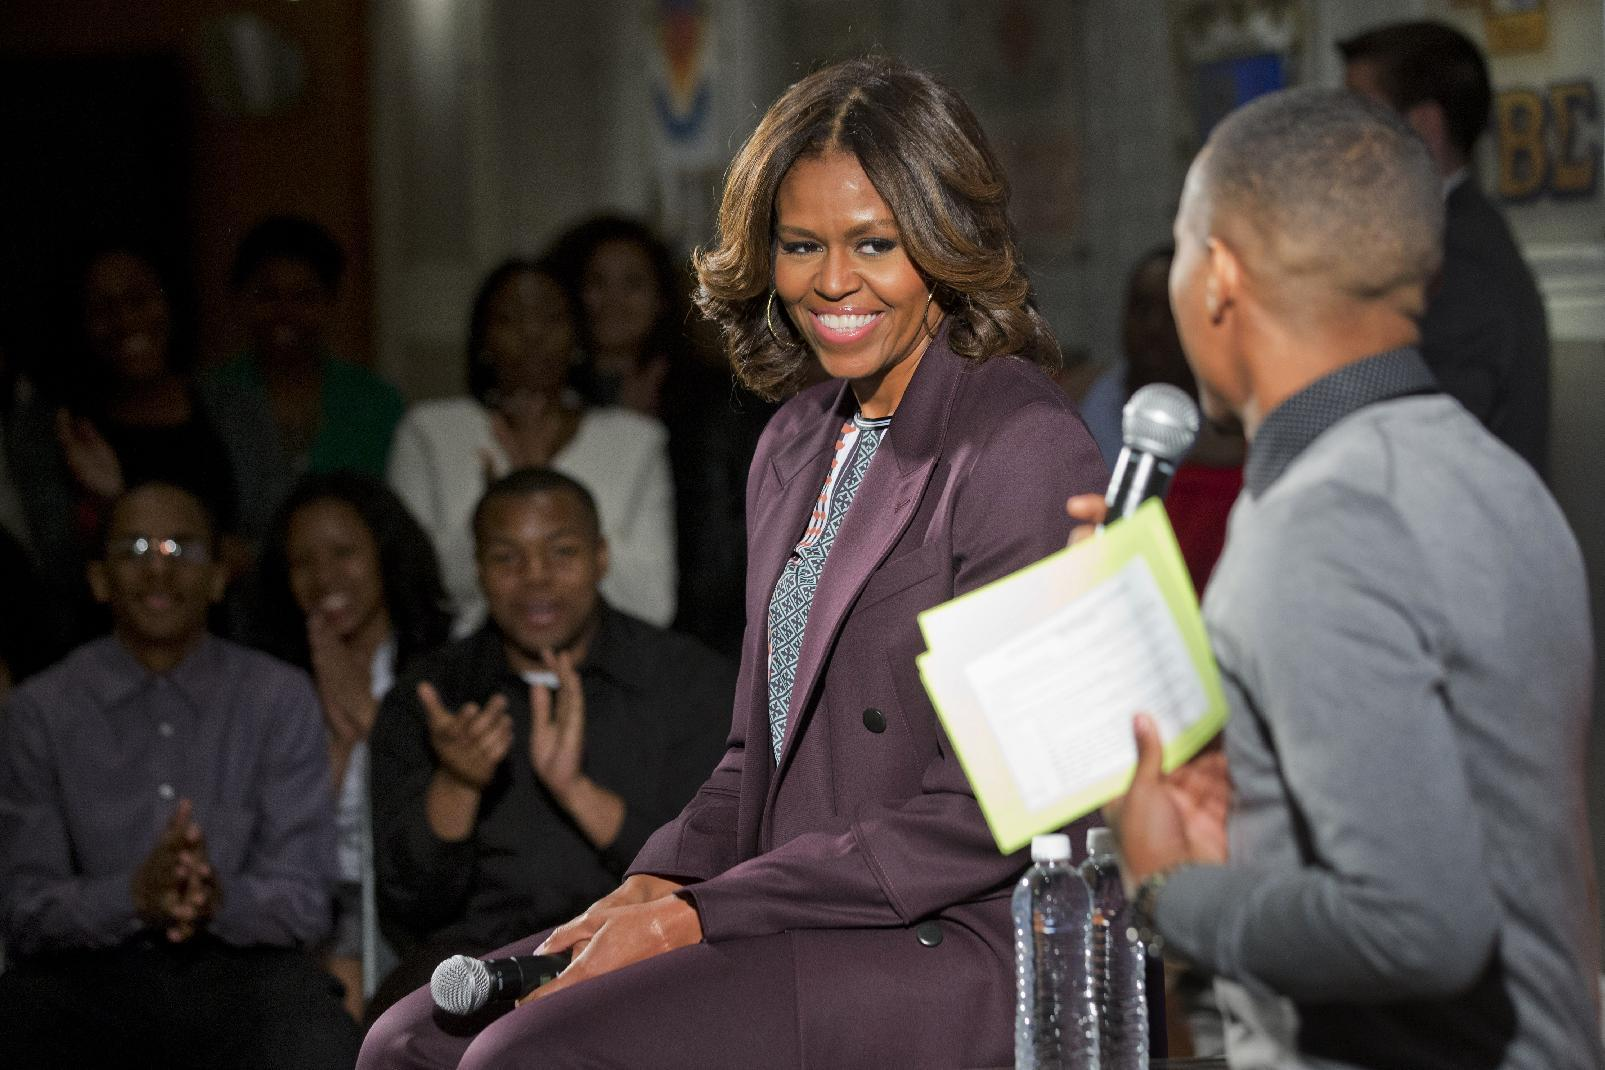 First lady Michelle Obama smiles at rapper Bow Wow at Howard University in Washington, Thursday April 17, 2014. The first lady joined juniors and seniors from Chicago public high schools on the first day of their four-day visit to Howard University, as part of a program to immerse talented high school students in a college campus environment. (AP Photo/Jacquelyn Martin)